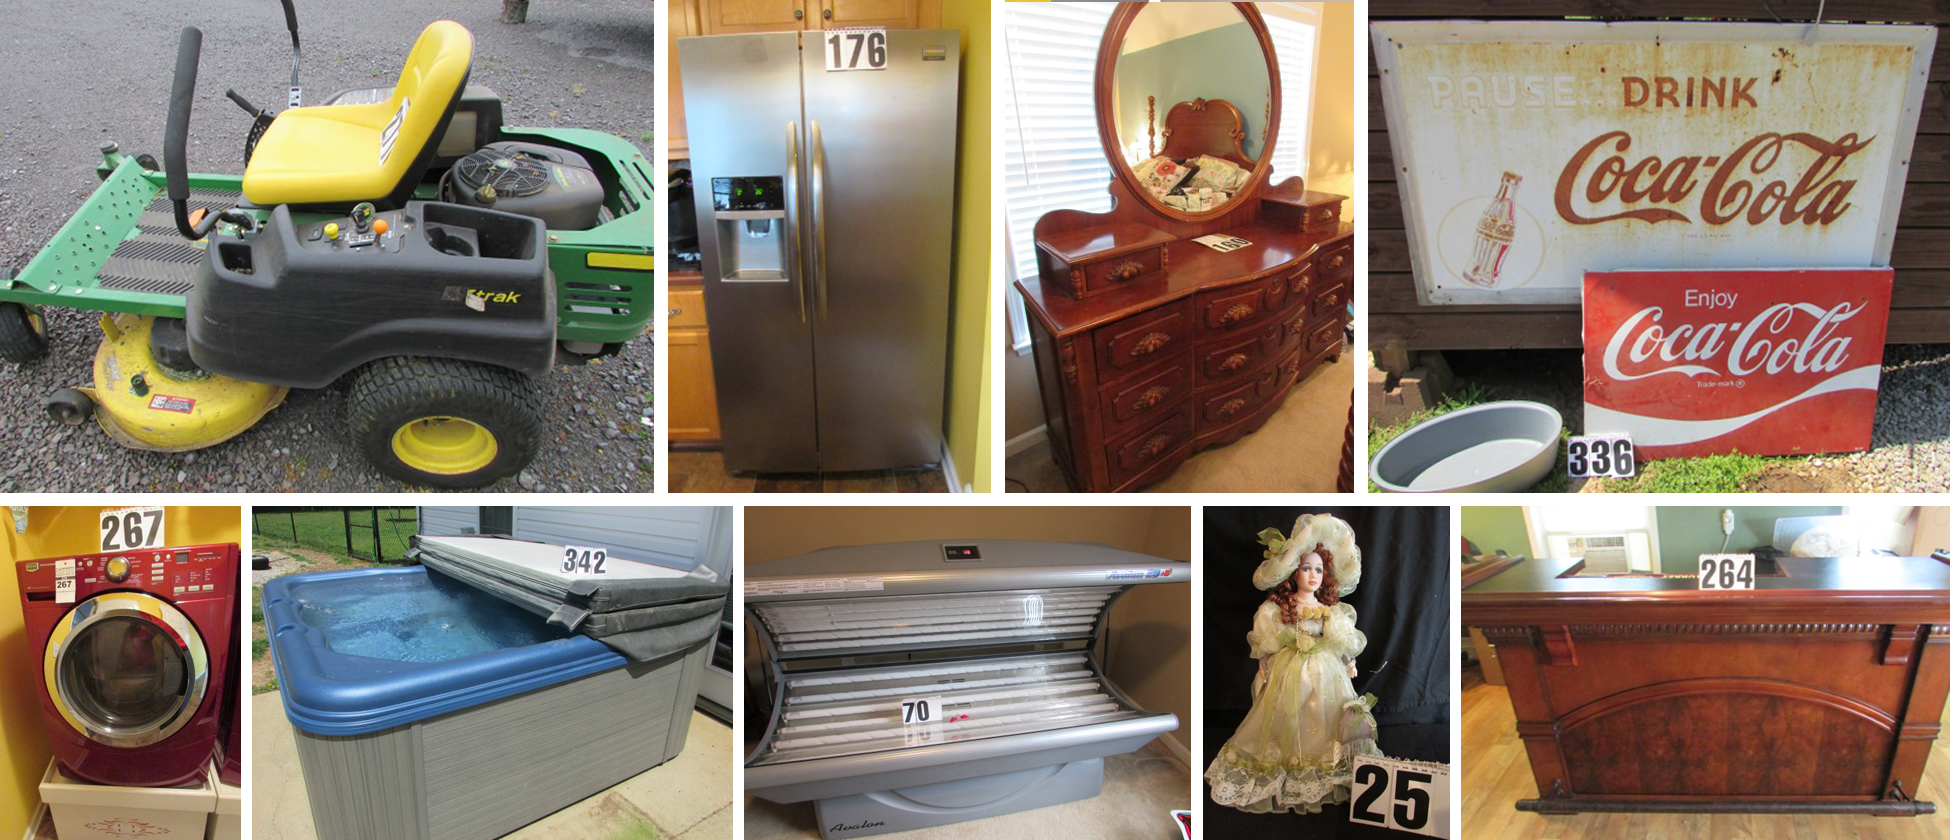 Auction, For Sale, Furniture, Appliances, TV, John Deere, Zero Turn, Lawn Mower, Hot Tub, Tanning Bed, Frigidaire, Refrigerator, Maytag, Washer, Dryer, Coca-Cola, Collectibles, Budweiser, Coors Light, Nascar, Dale Earnhardt, Porcelain Dolls, For Sale, Bid, Online, Bidding, Comas, Montgomery, Murfreesboro, Christiana, Tennessee